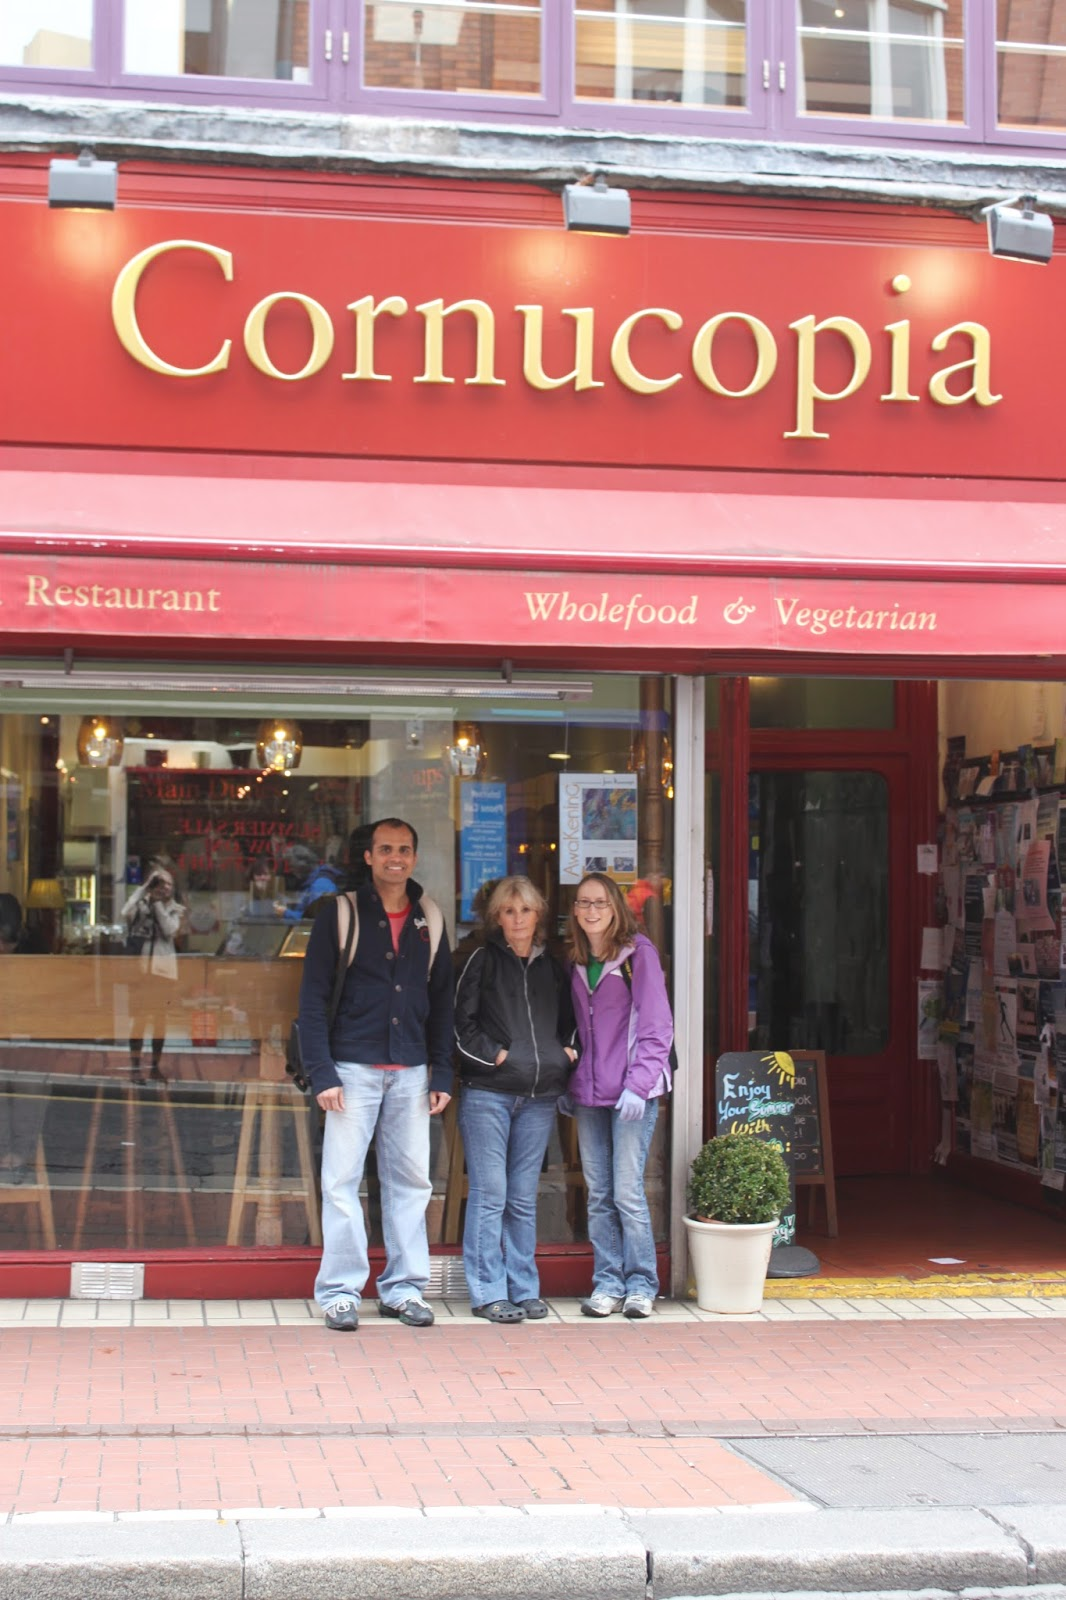 Cornucopia Whole and Vegetarian Vegan Restaurant Dublin, Ireland